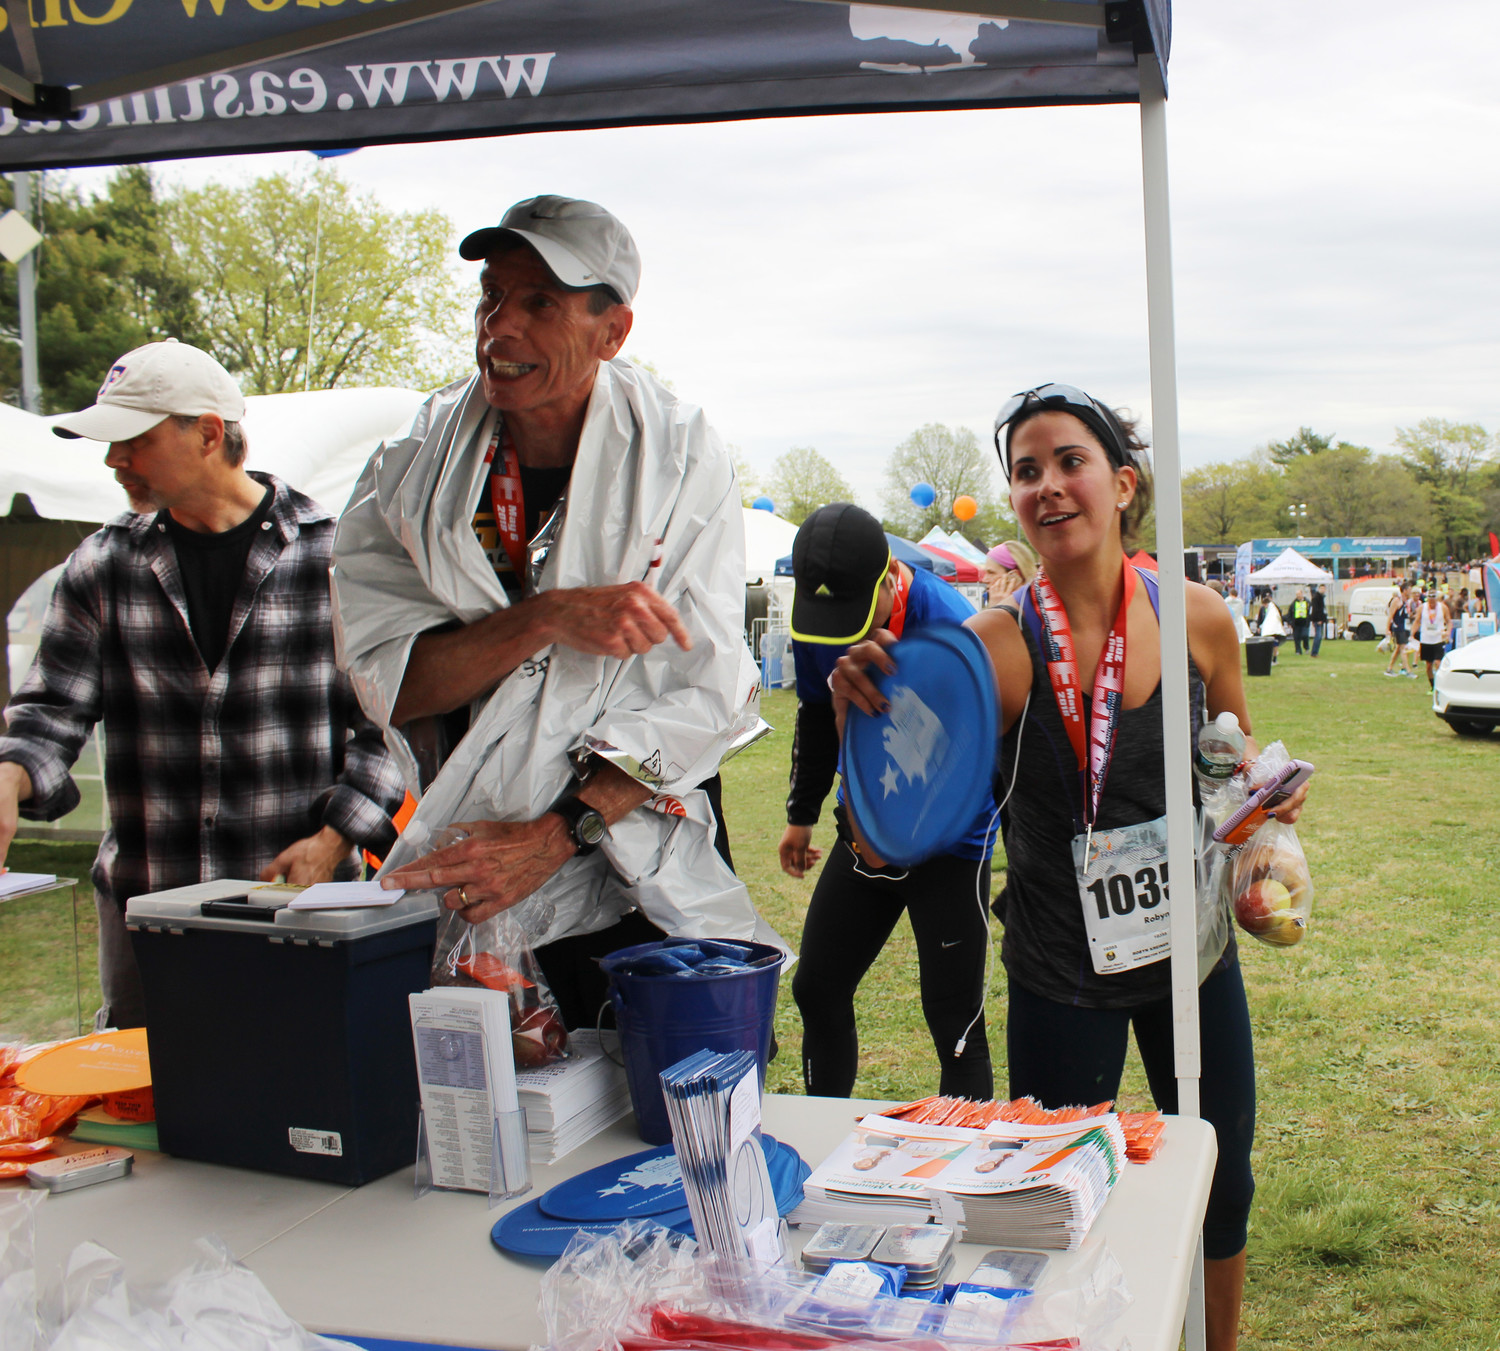 P.J. Diskin, 62, of Mineola, and Robyn Kreiner, 34, of Huntington Station, who compete in races across Long Island, said that the Long Island Marathon is one of their favorites.